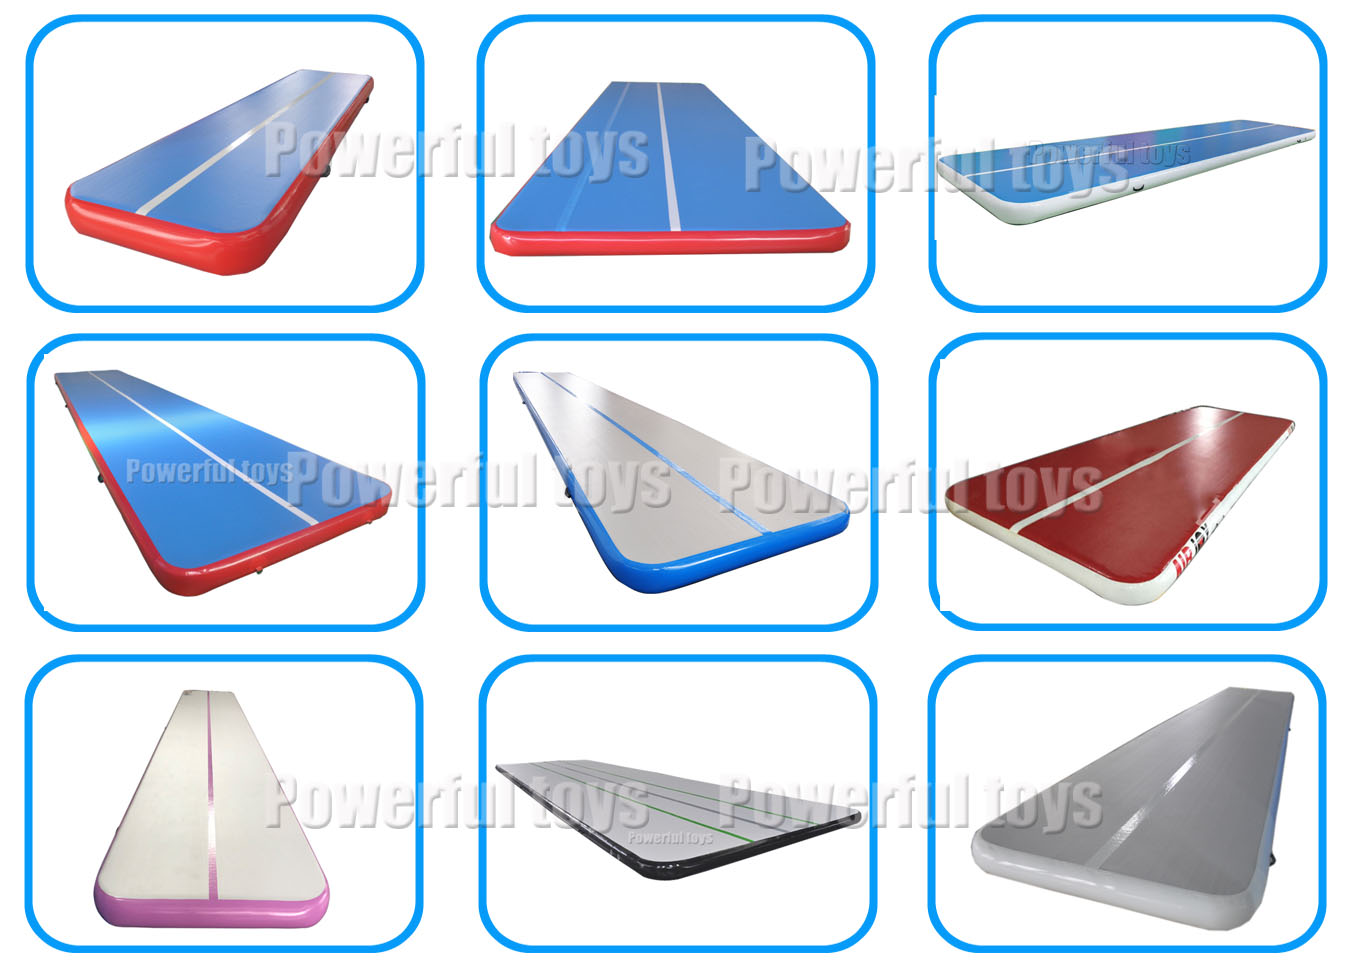 inflatable air track tumbling mat for Gymnastics